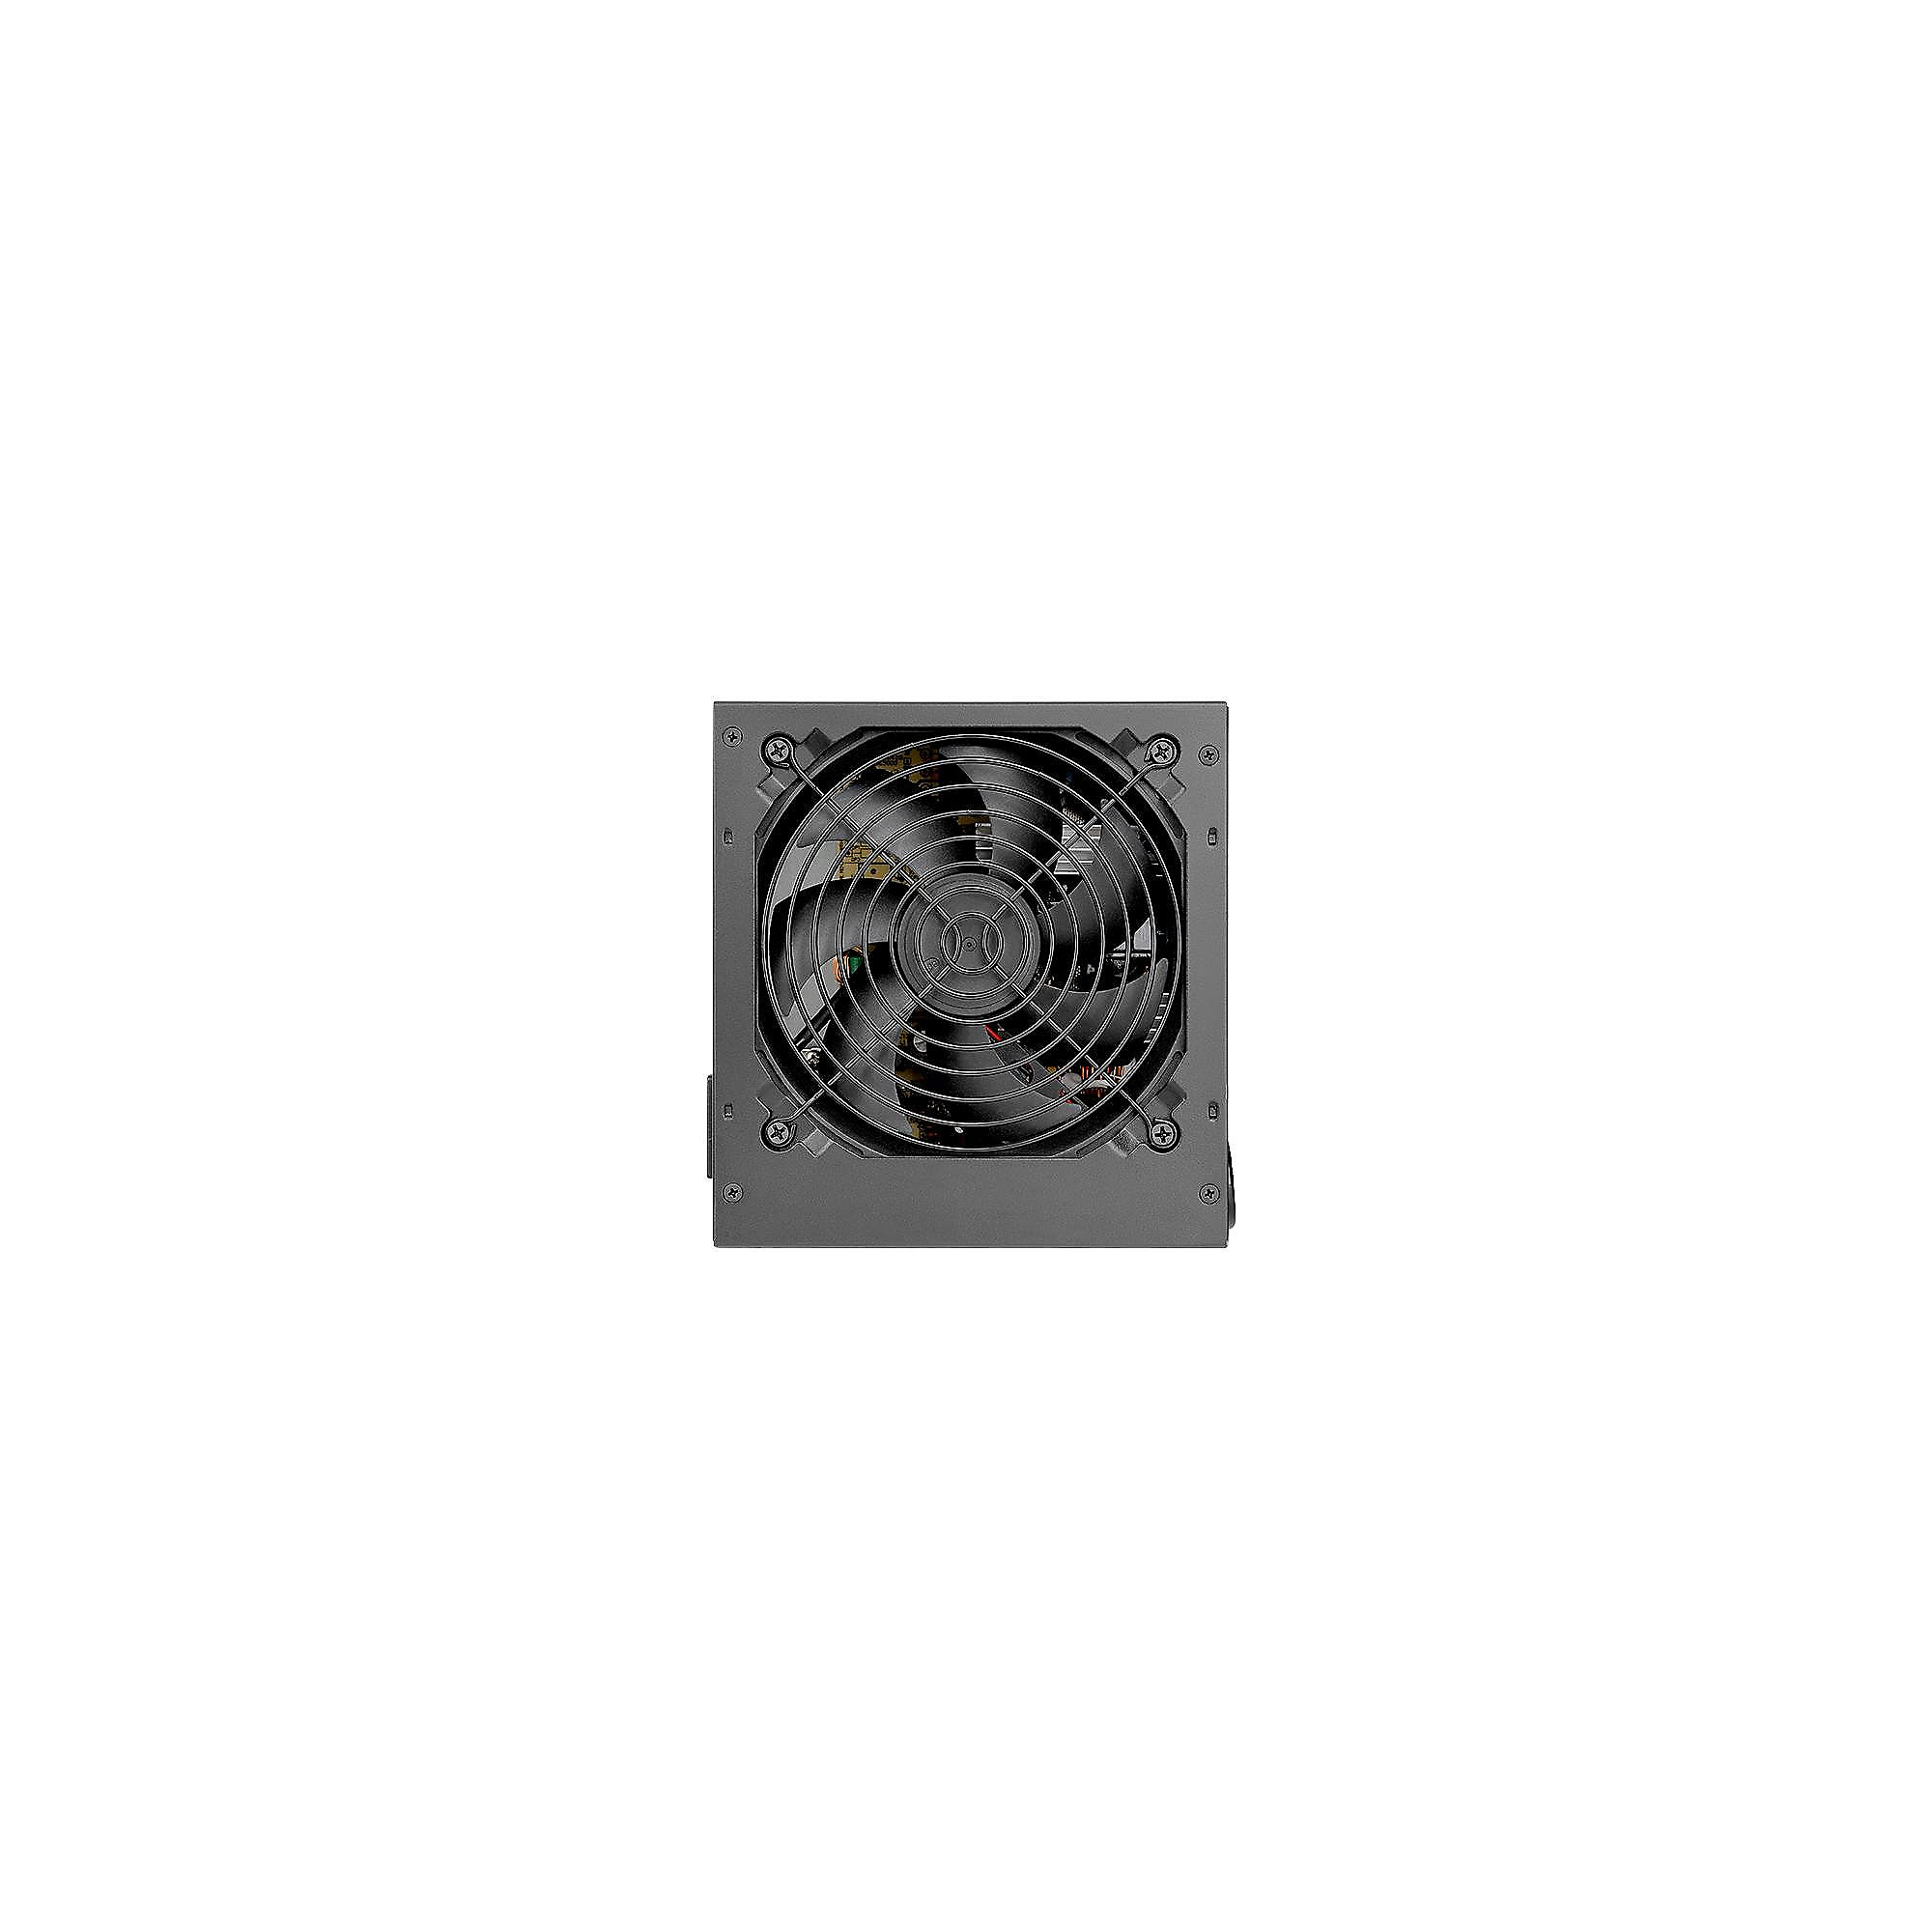 Thermaltake TRS 2 S 700W Netzteil 80+ (120mm Lüfter)